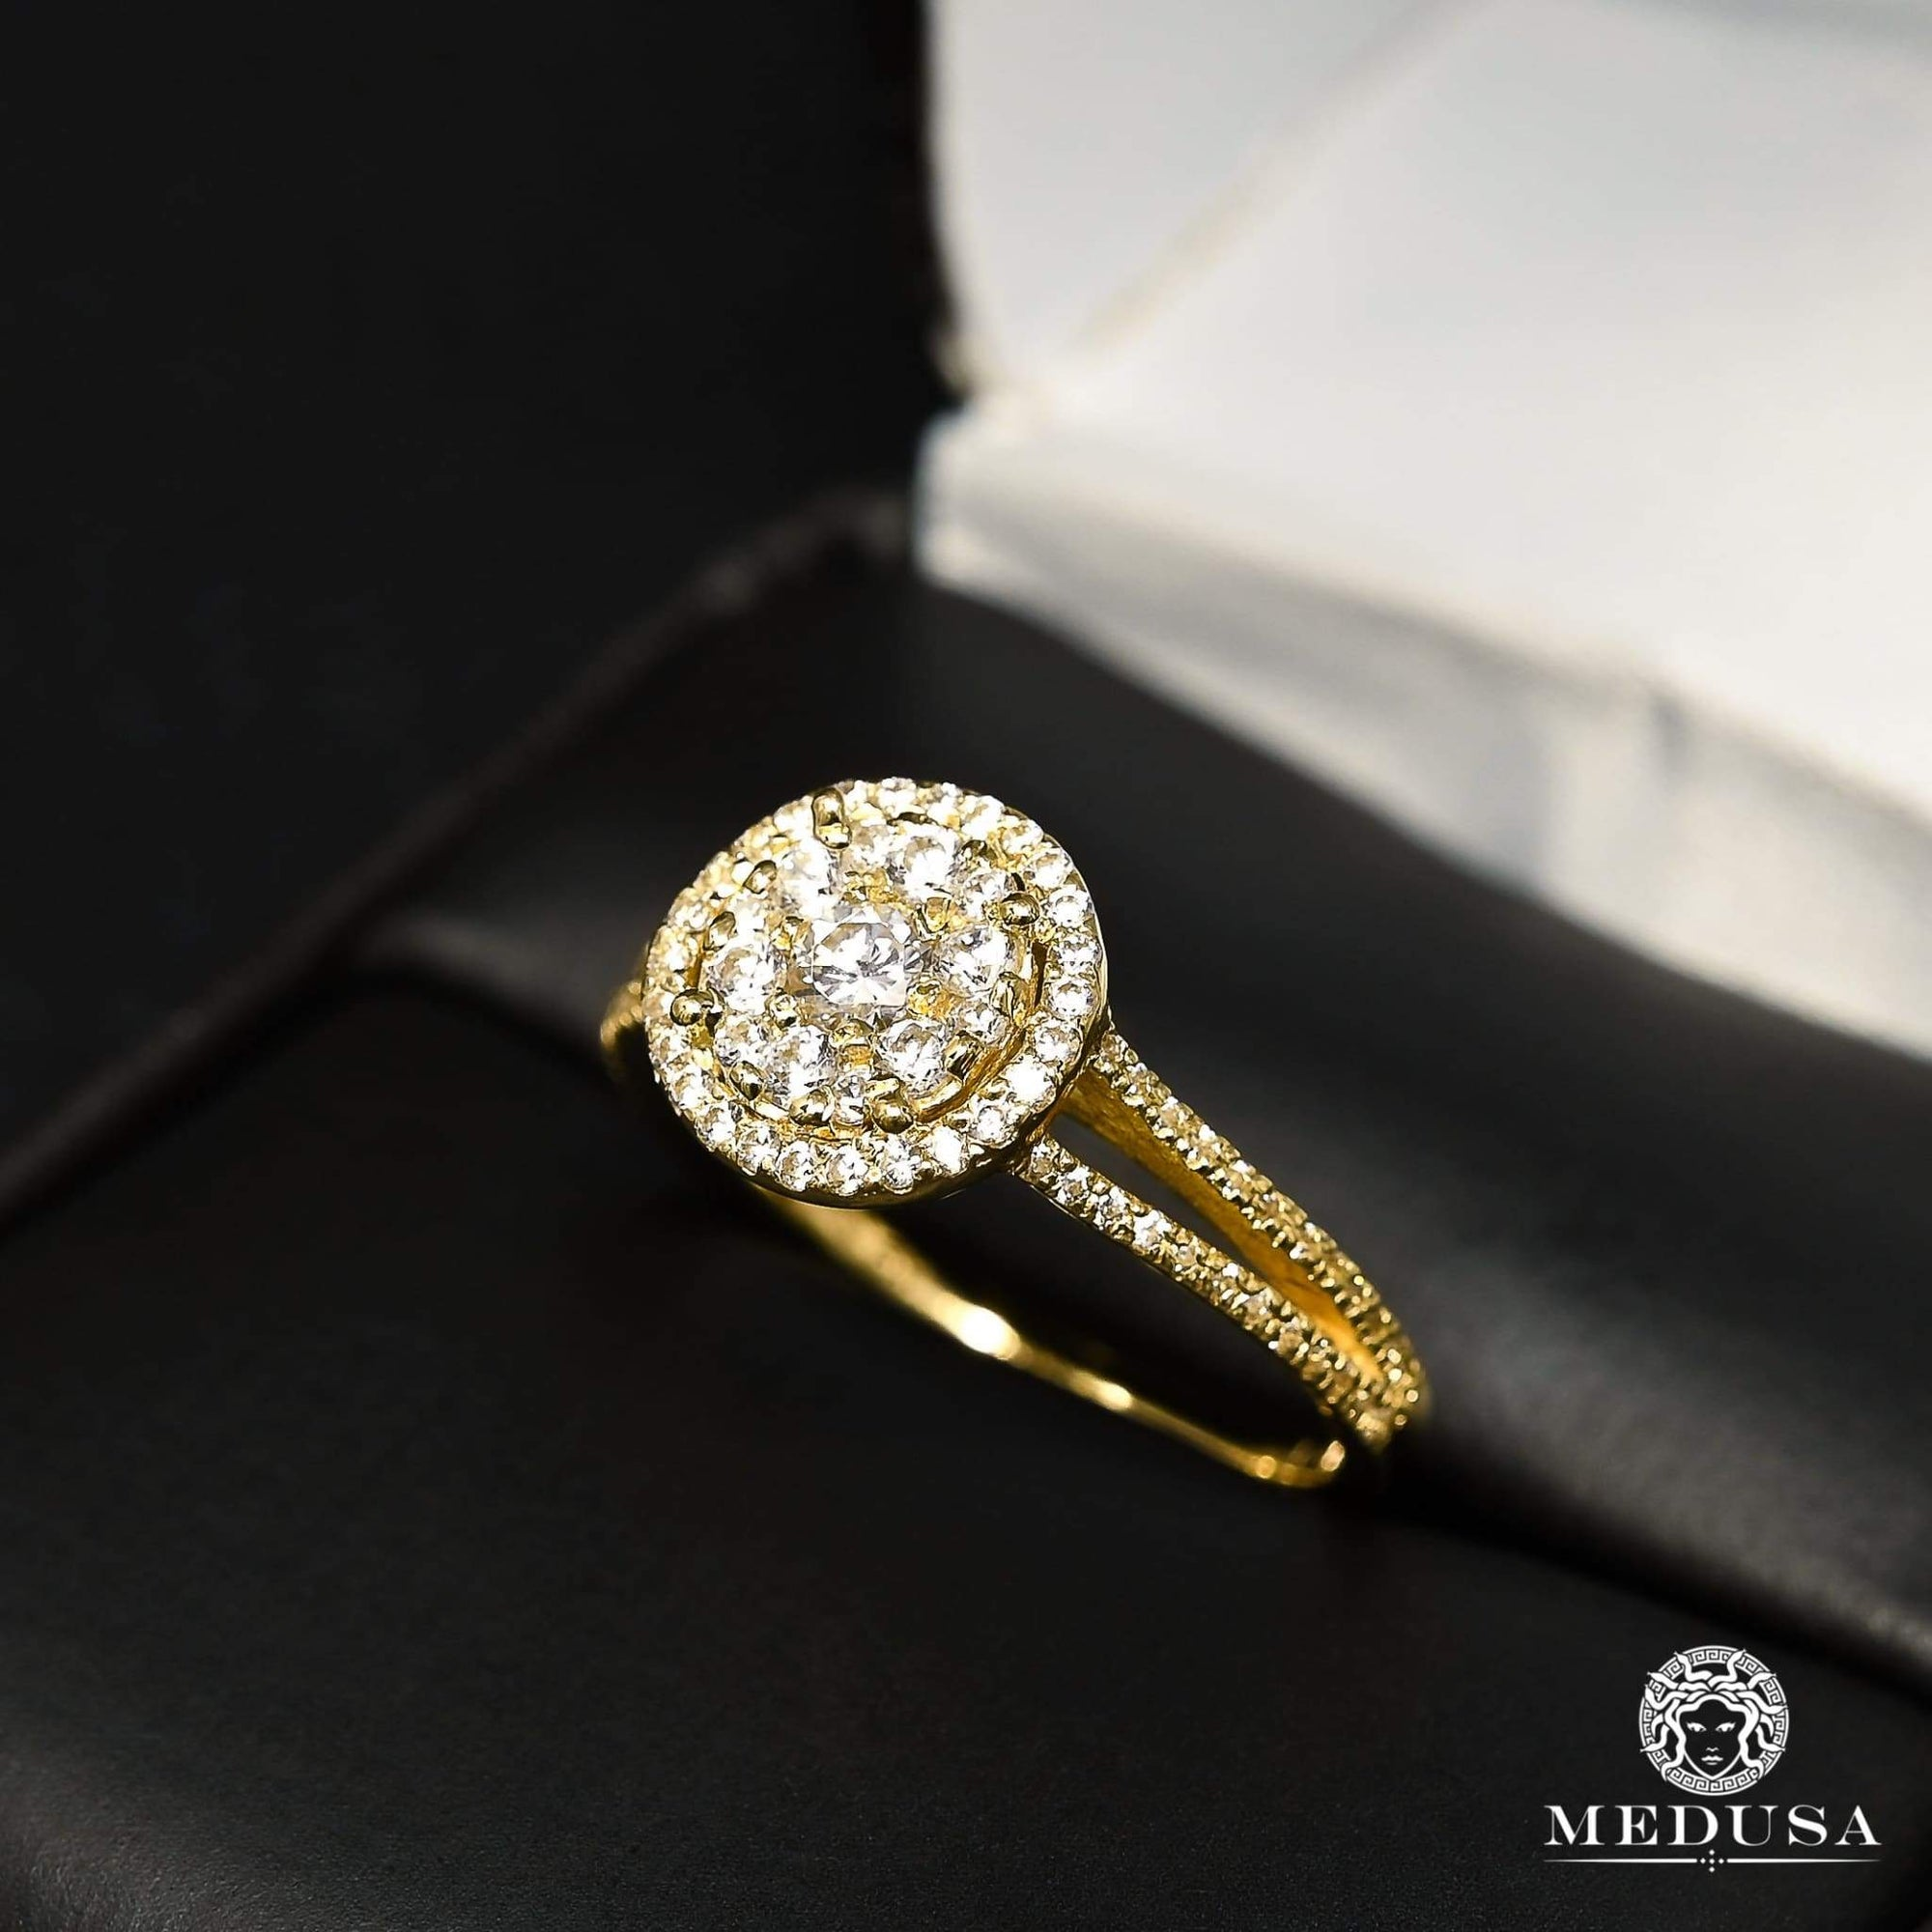 Bague à Diamants en Or 14K | Bague Fiançaille Solitaire F28 - MA0881 Or Jaune